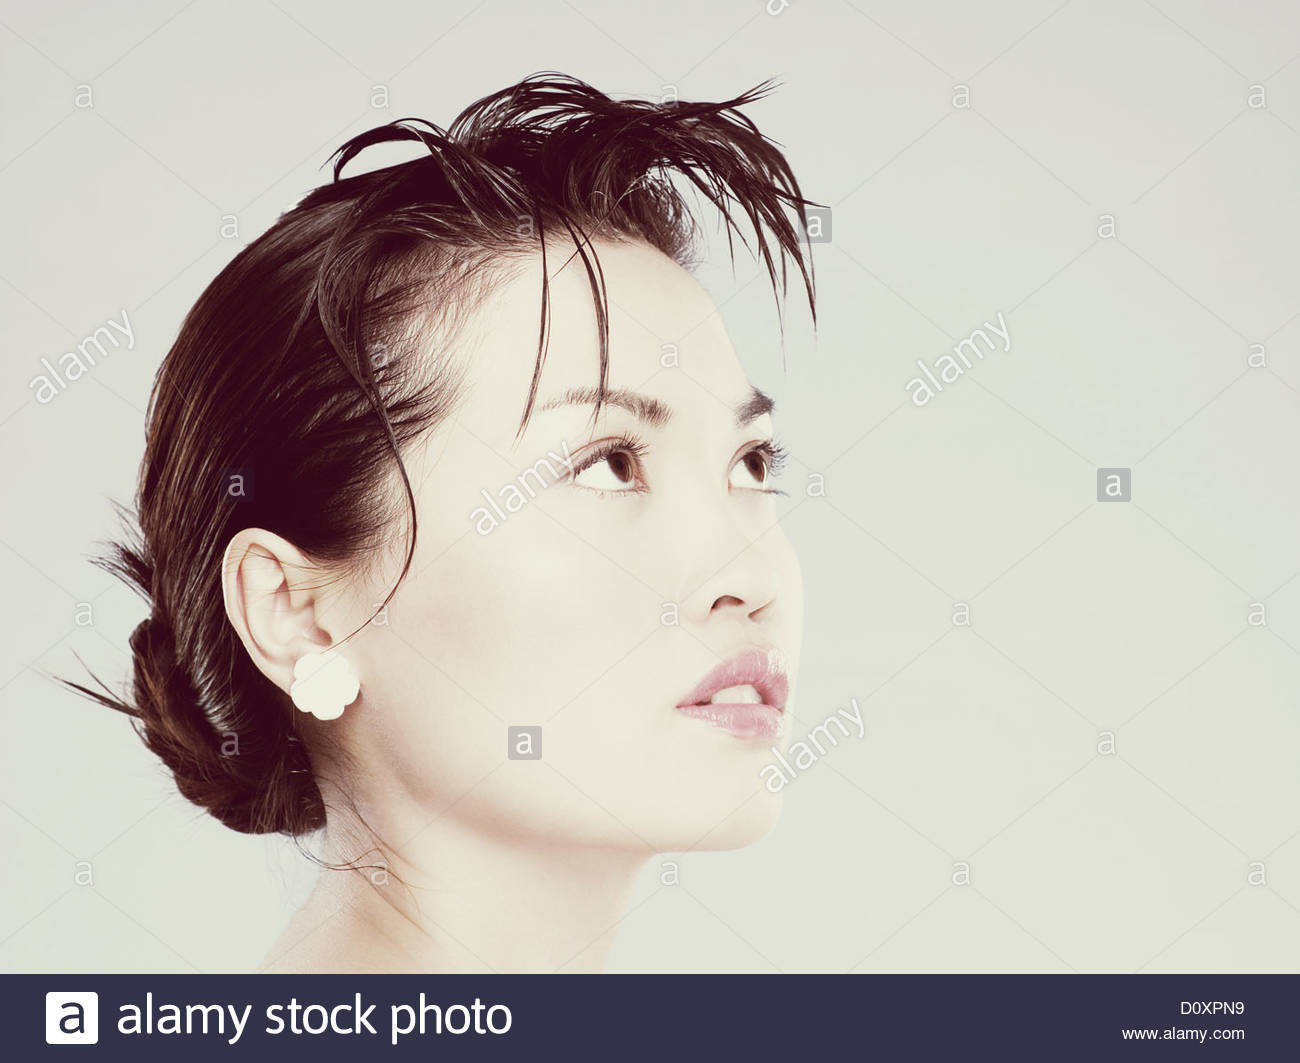 Young woman looking up - Stock Image